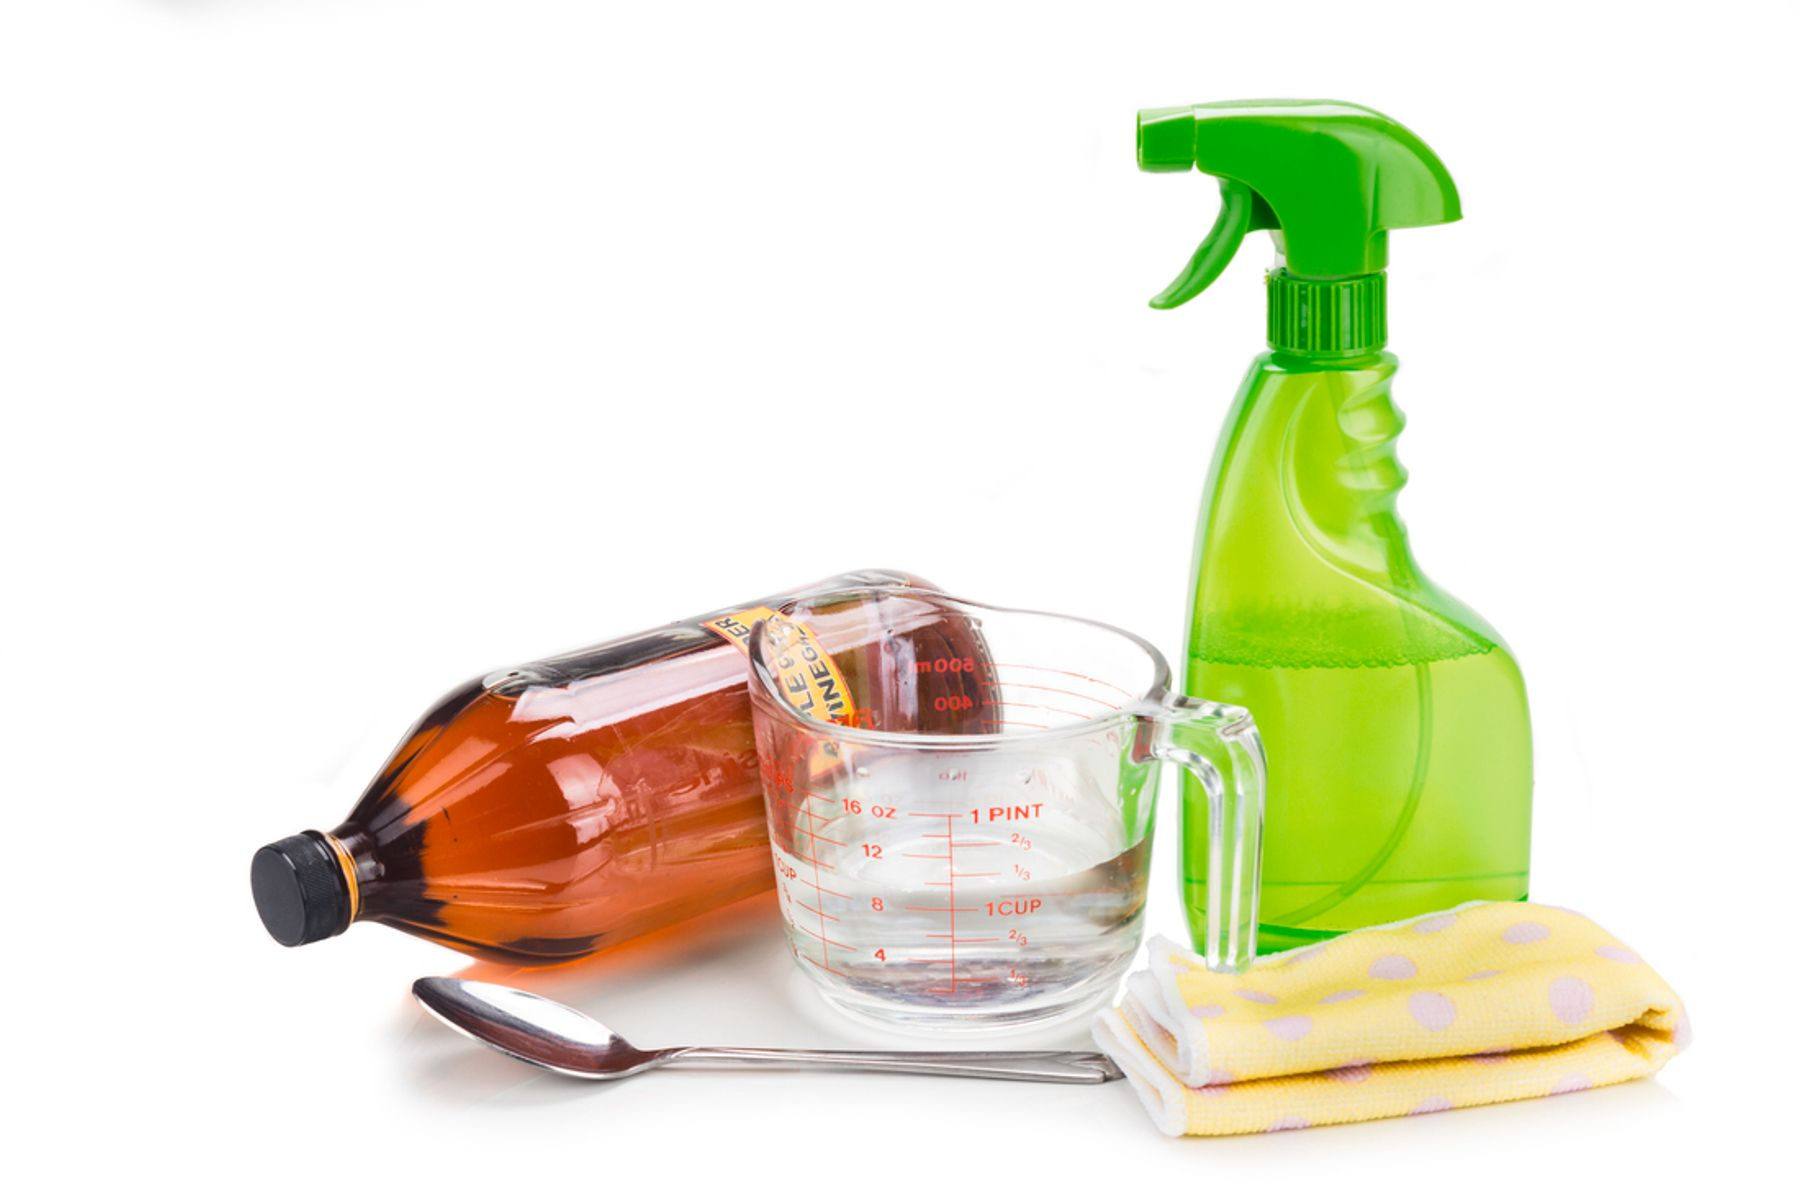 Image of common items needed for DIY cleaners